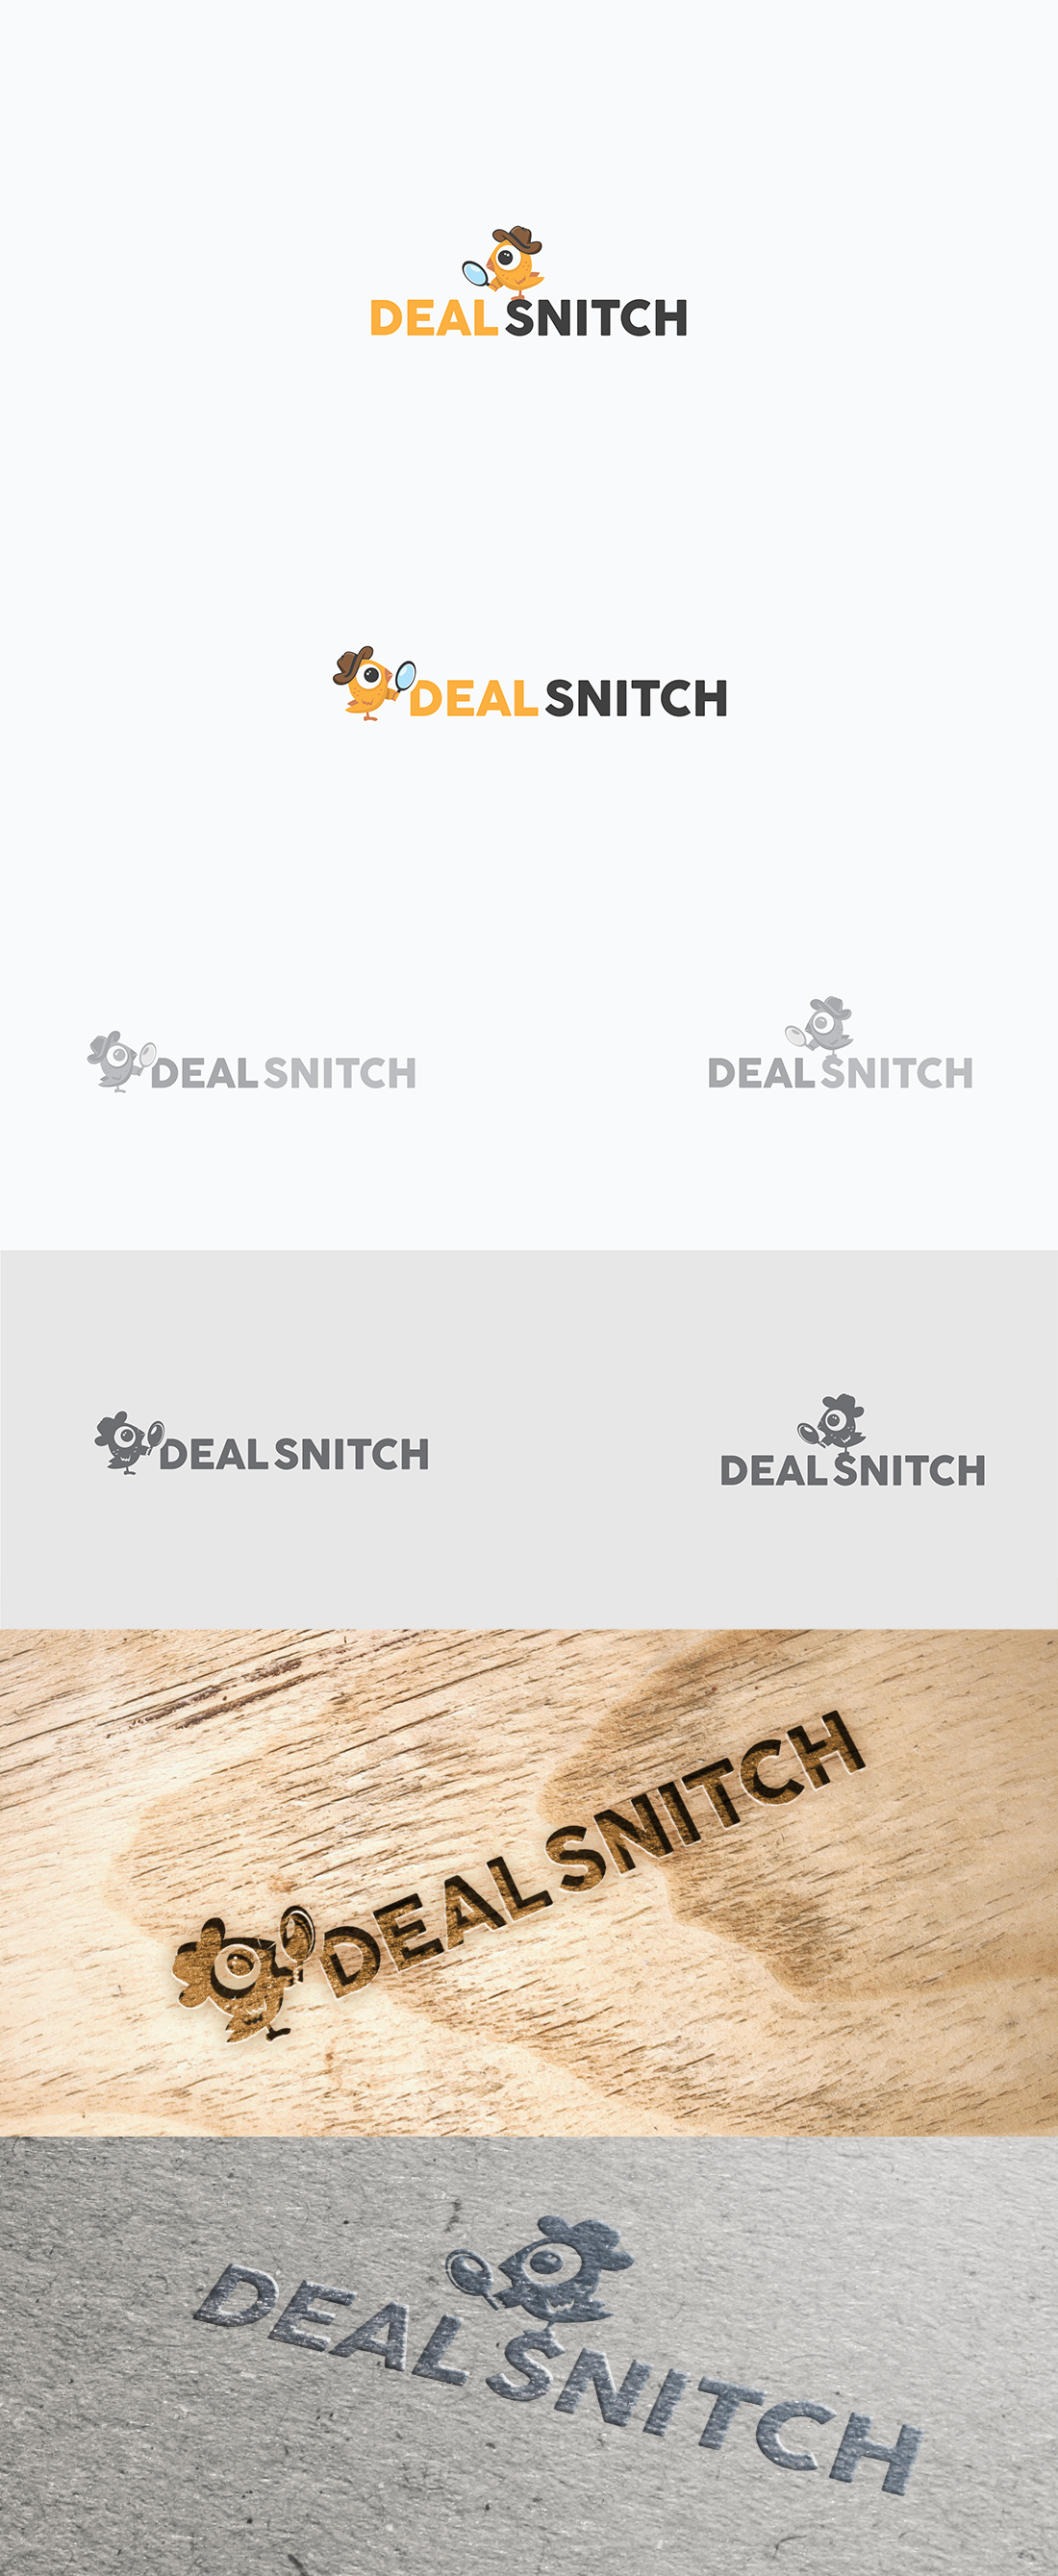 Logo for the Deal Snitch website